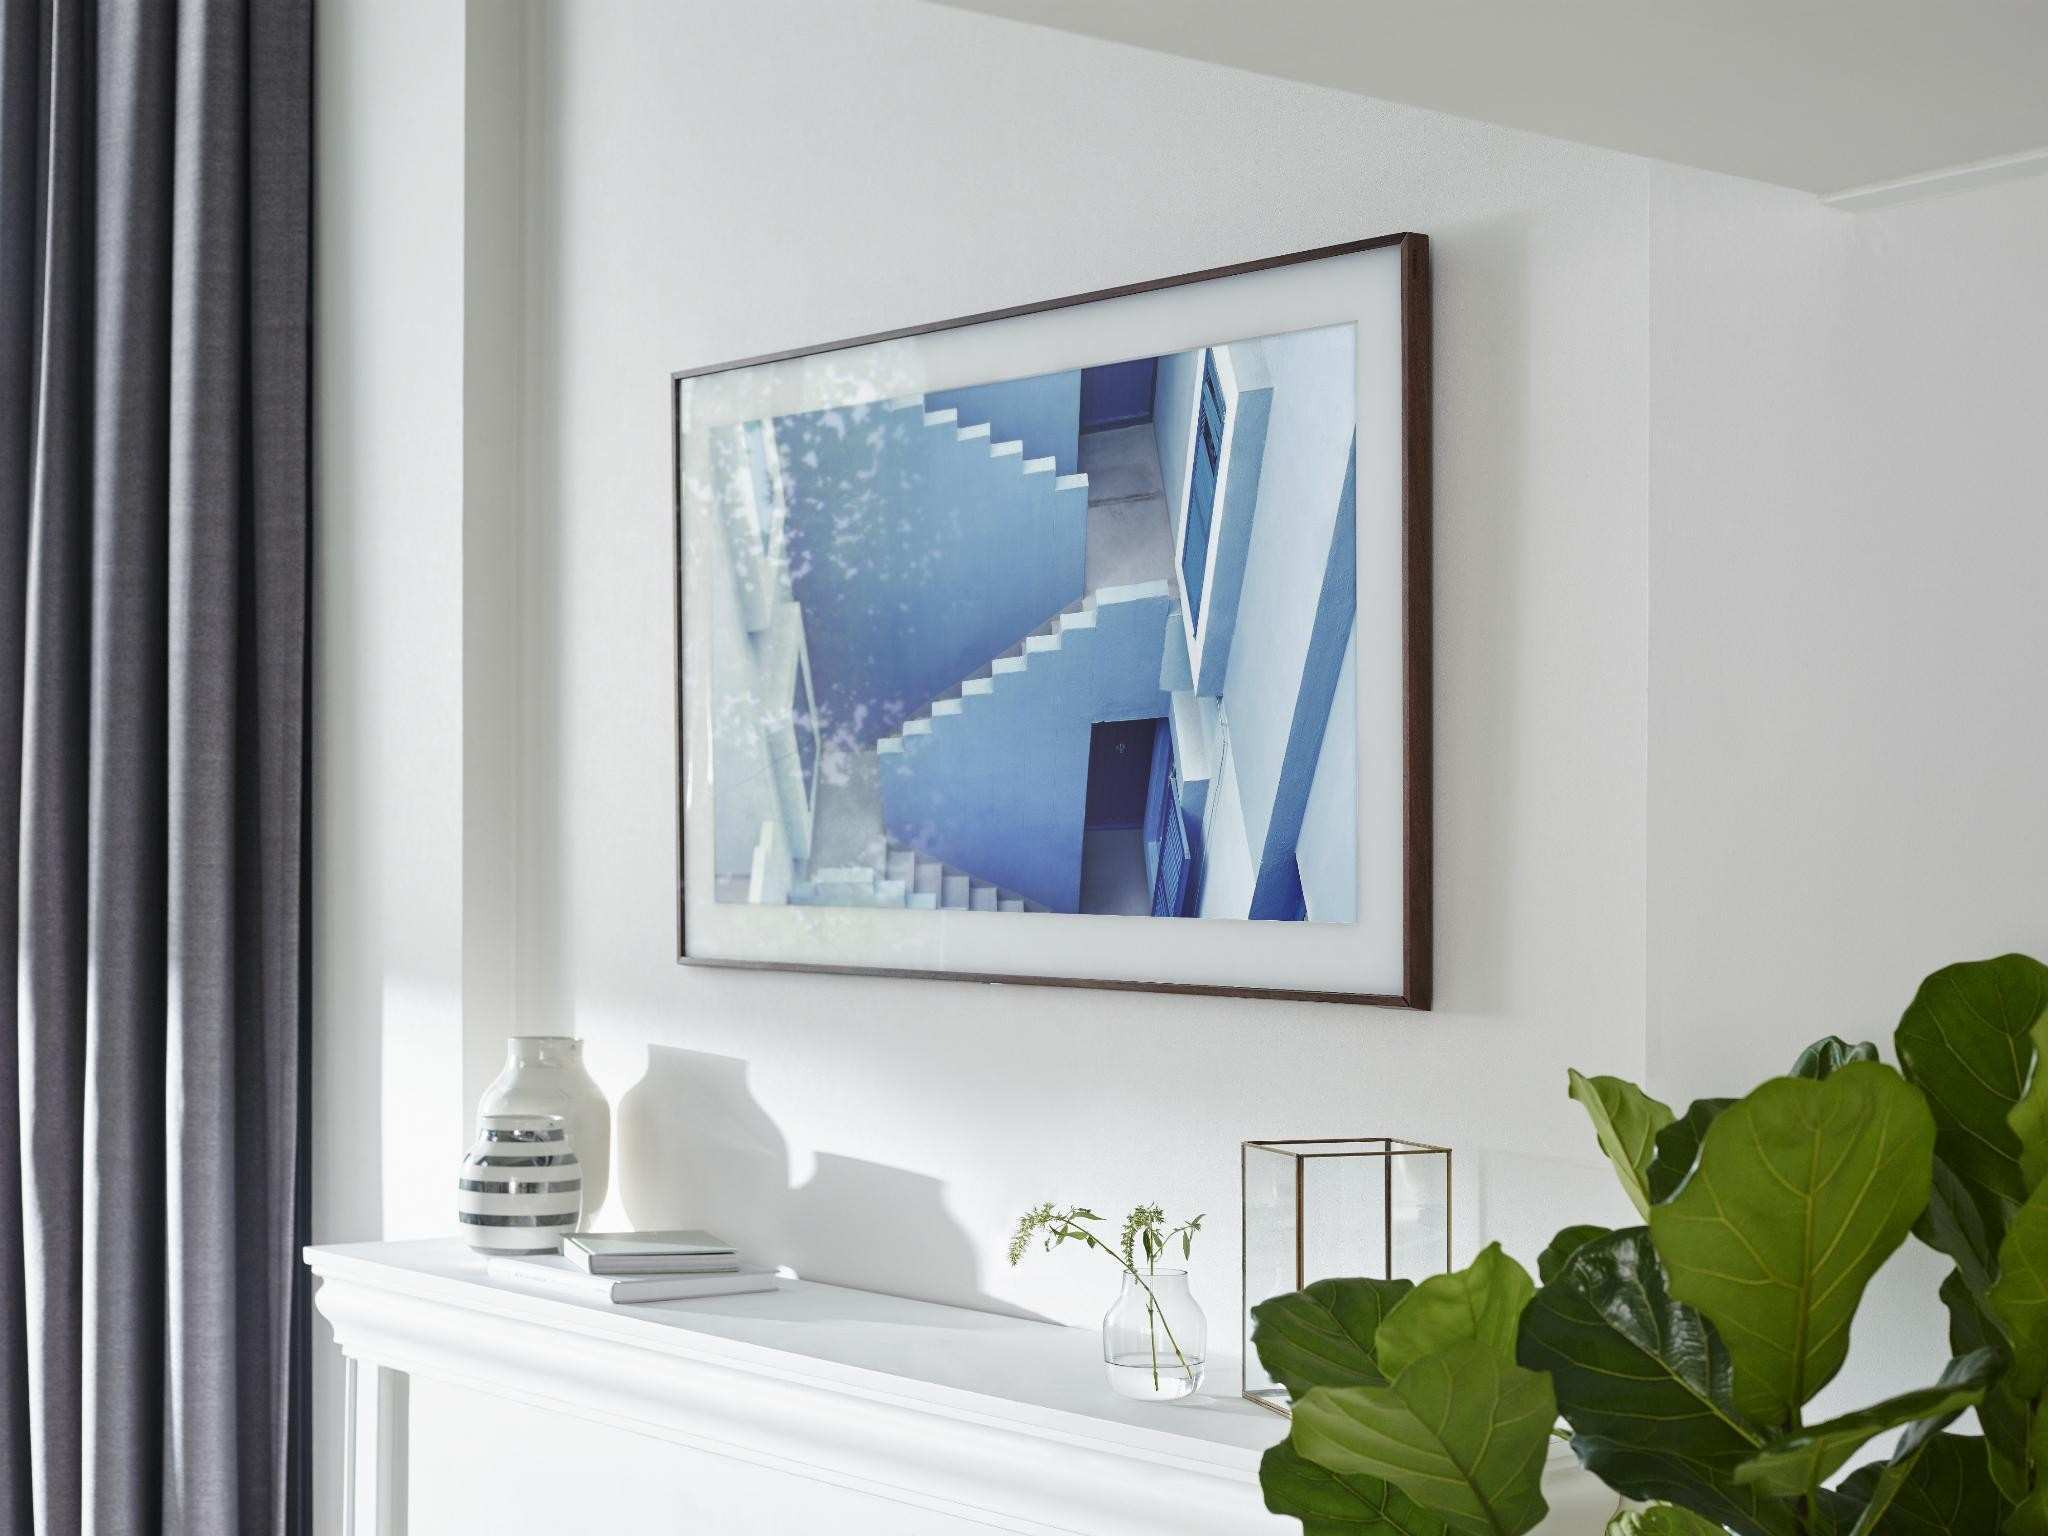 The Frame Samsung s new 4K TV transforms into wall art